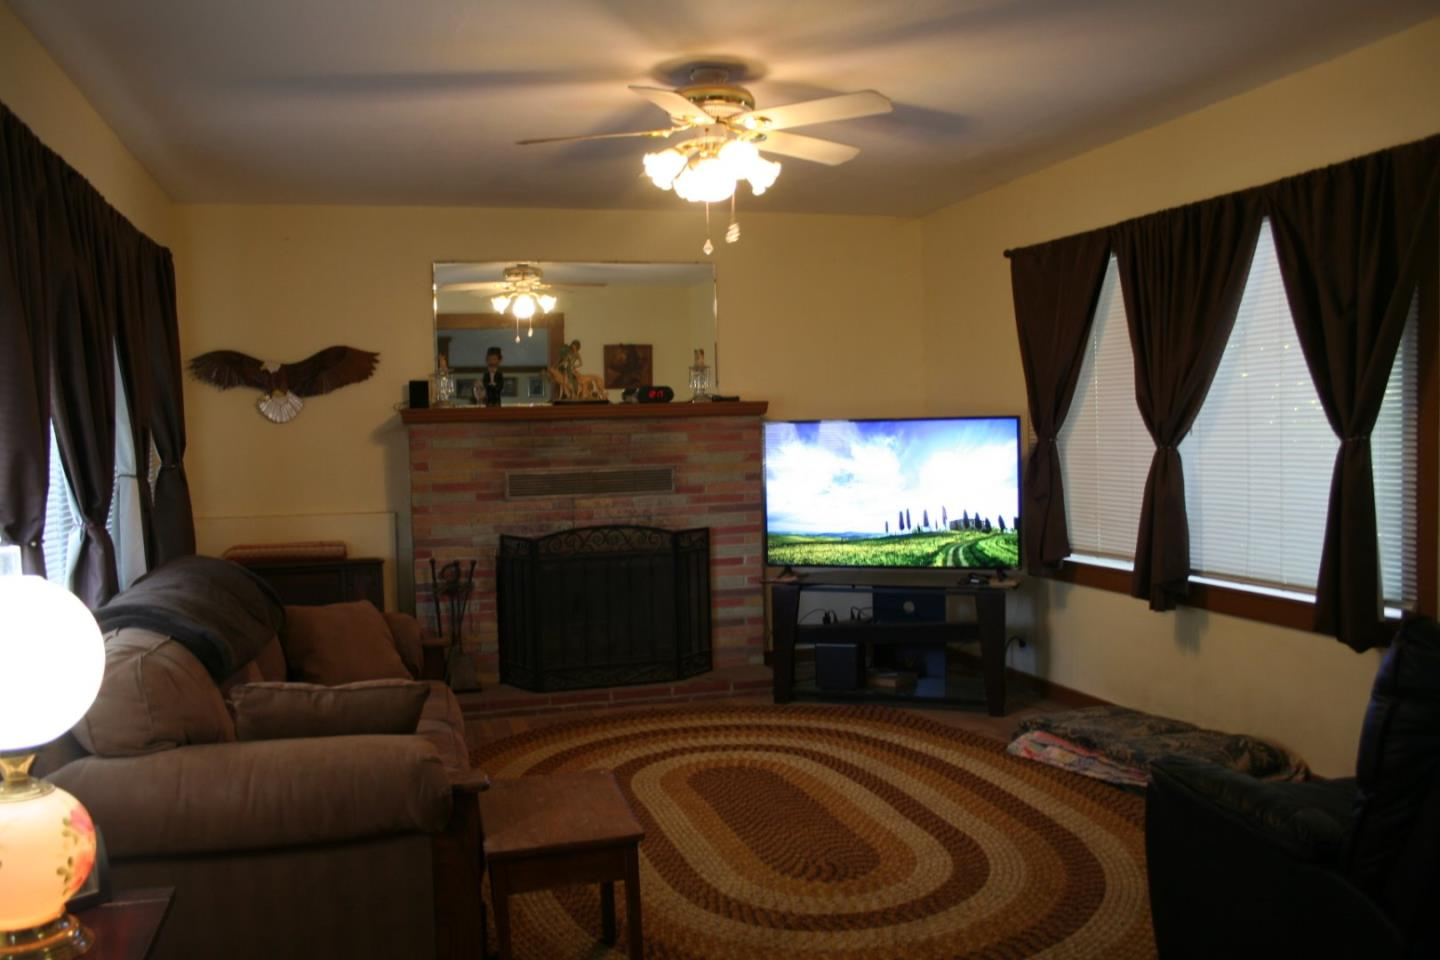 Additional photo for property listing at 435 N 6th Street 435 N 6th Street Chowchilla, California 93610 United States